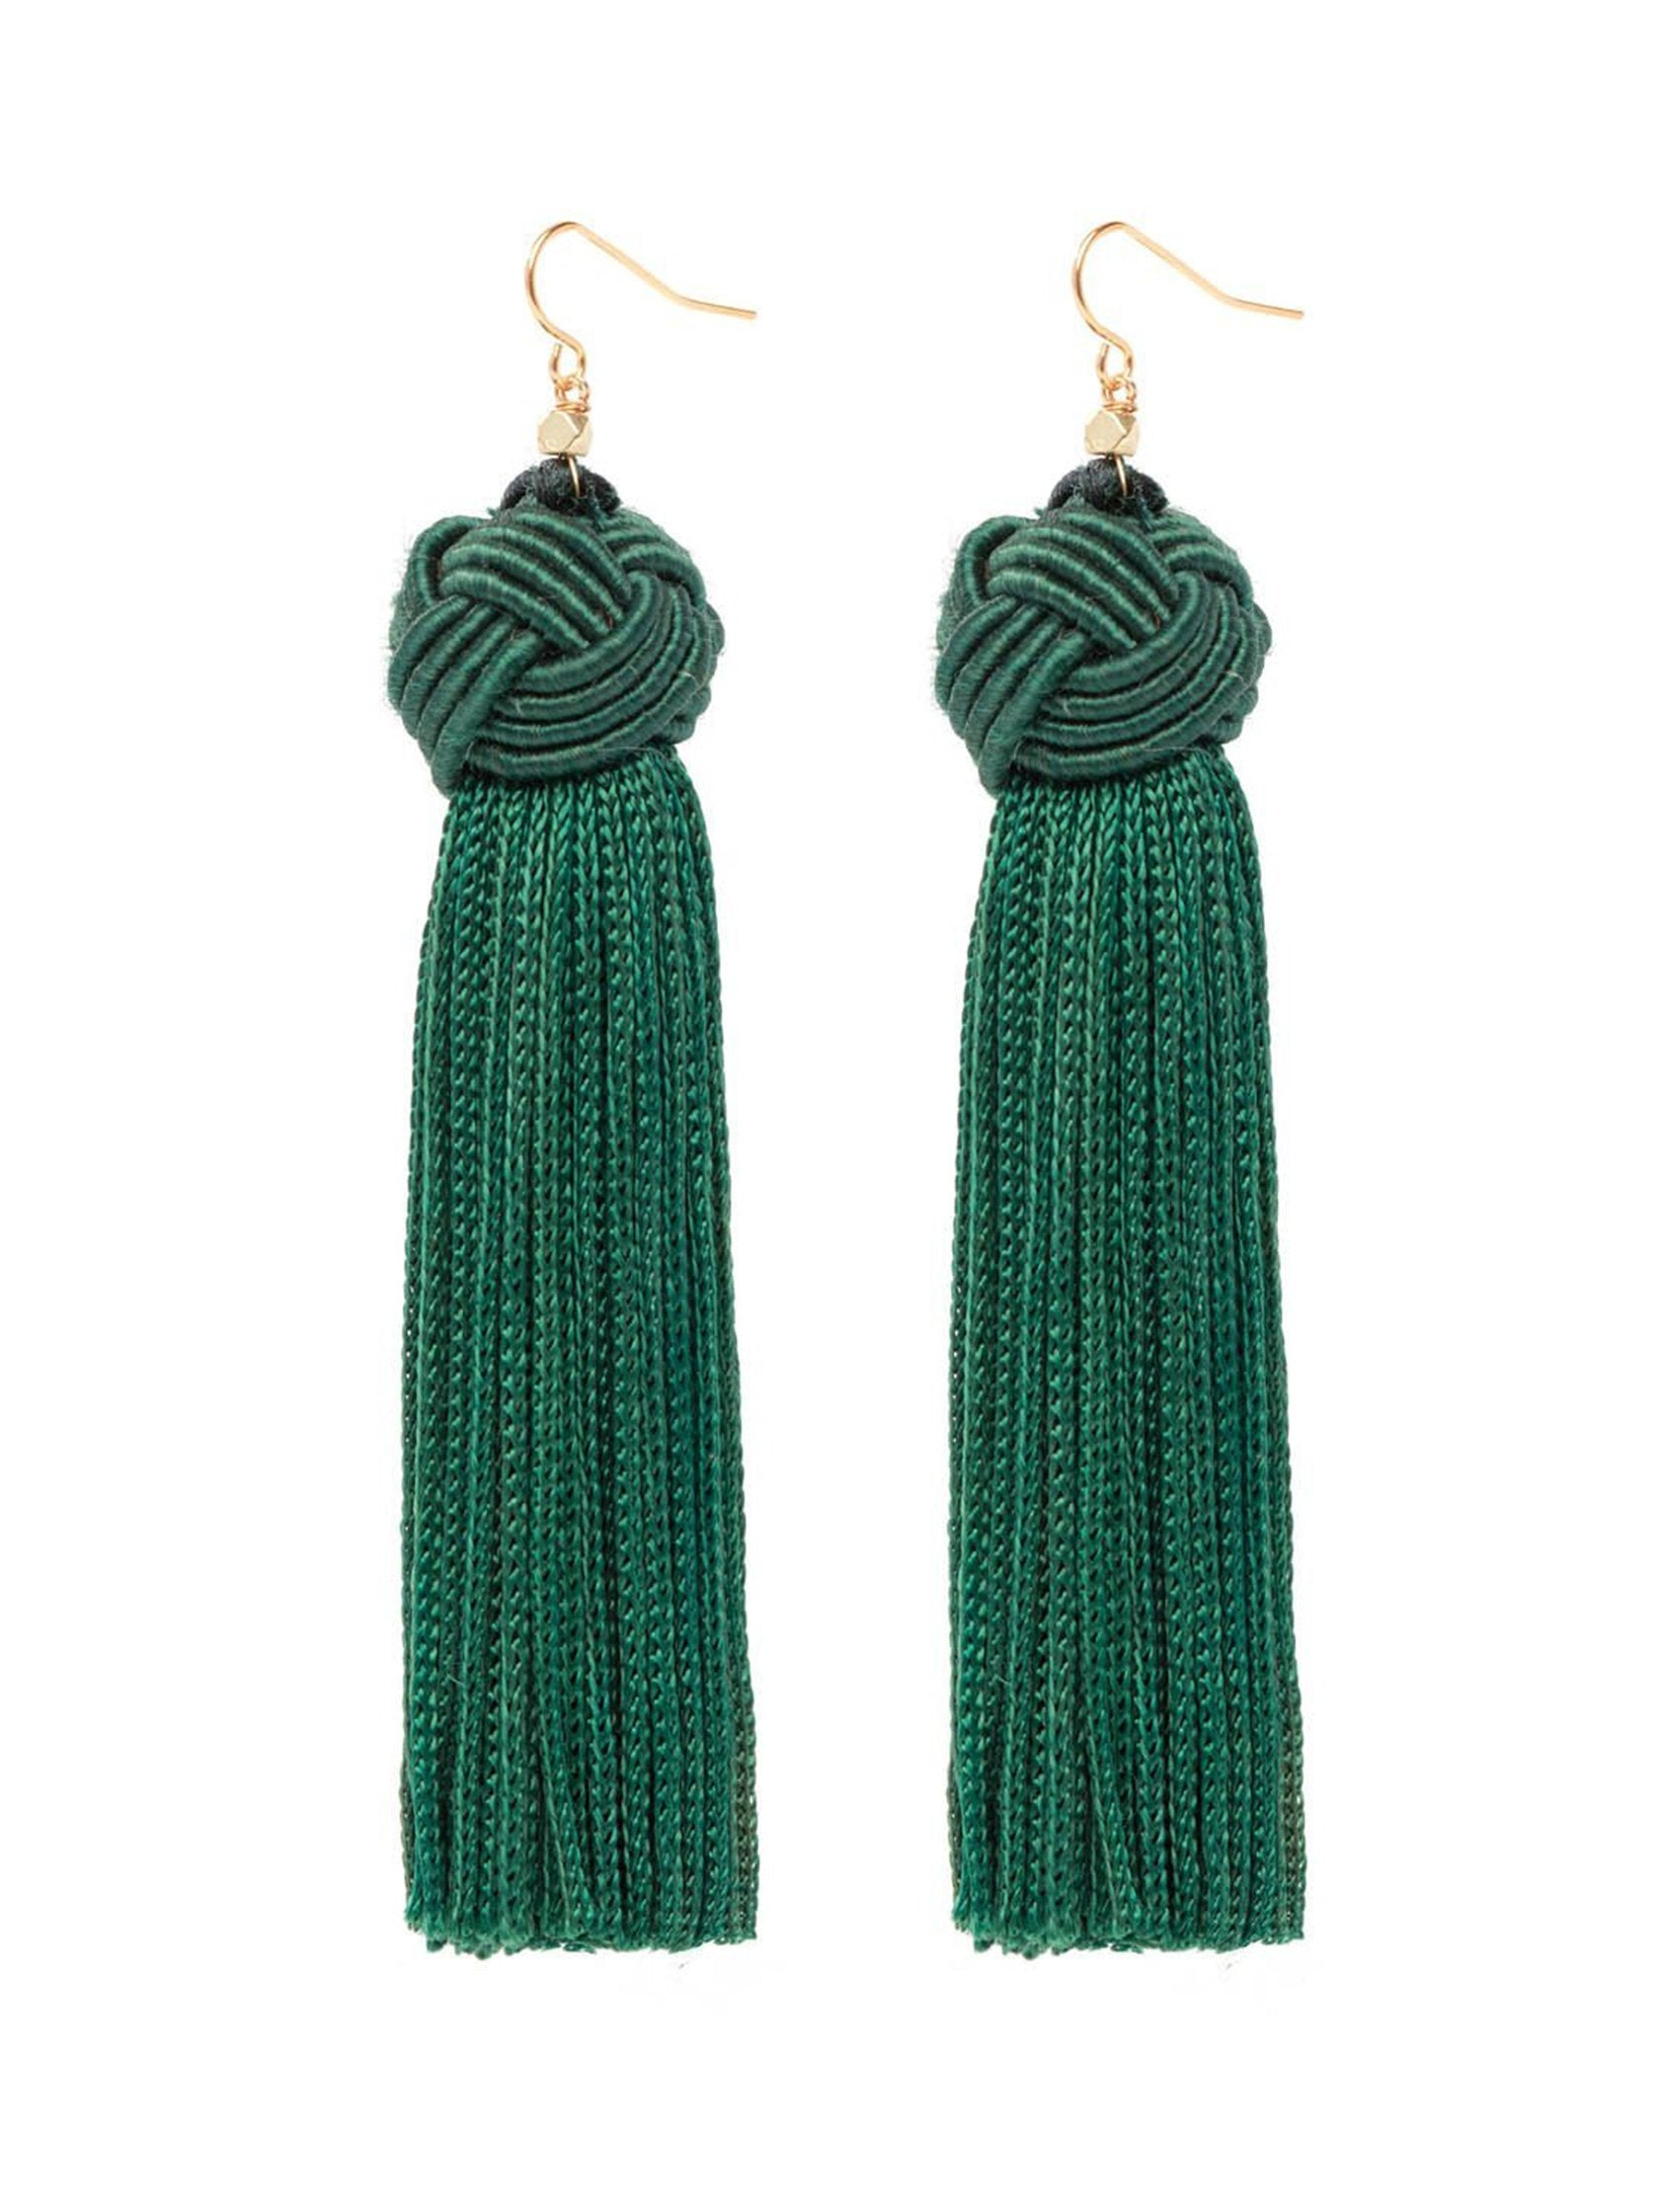 Women outfit in a earrings rental from Vanessa Mooney called Astrid Knotted Tassel Earring